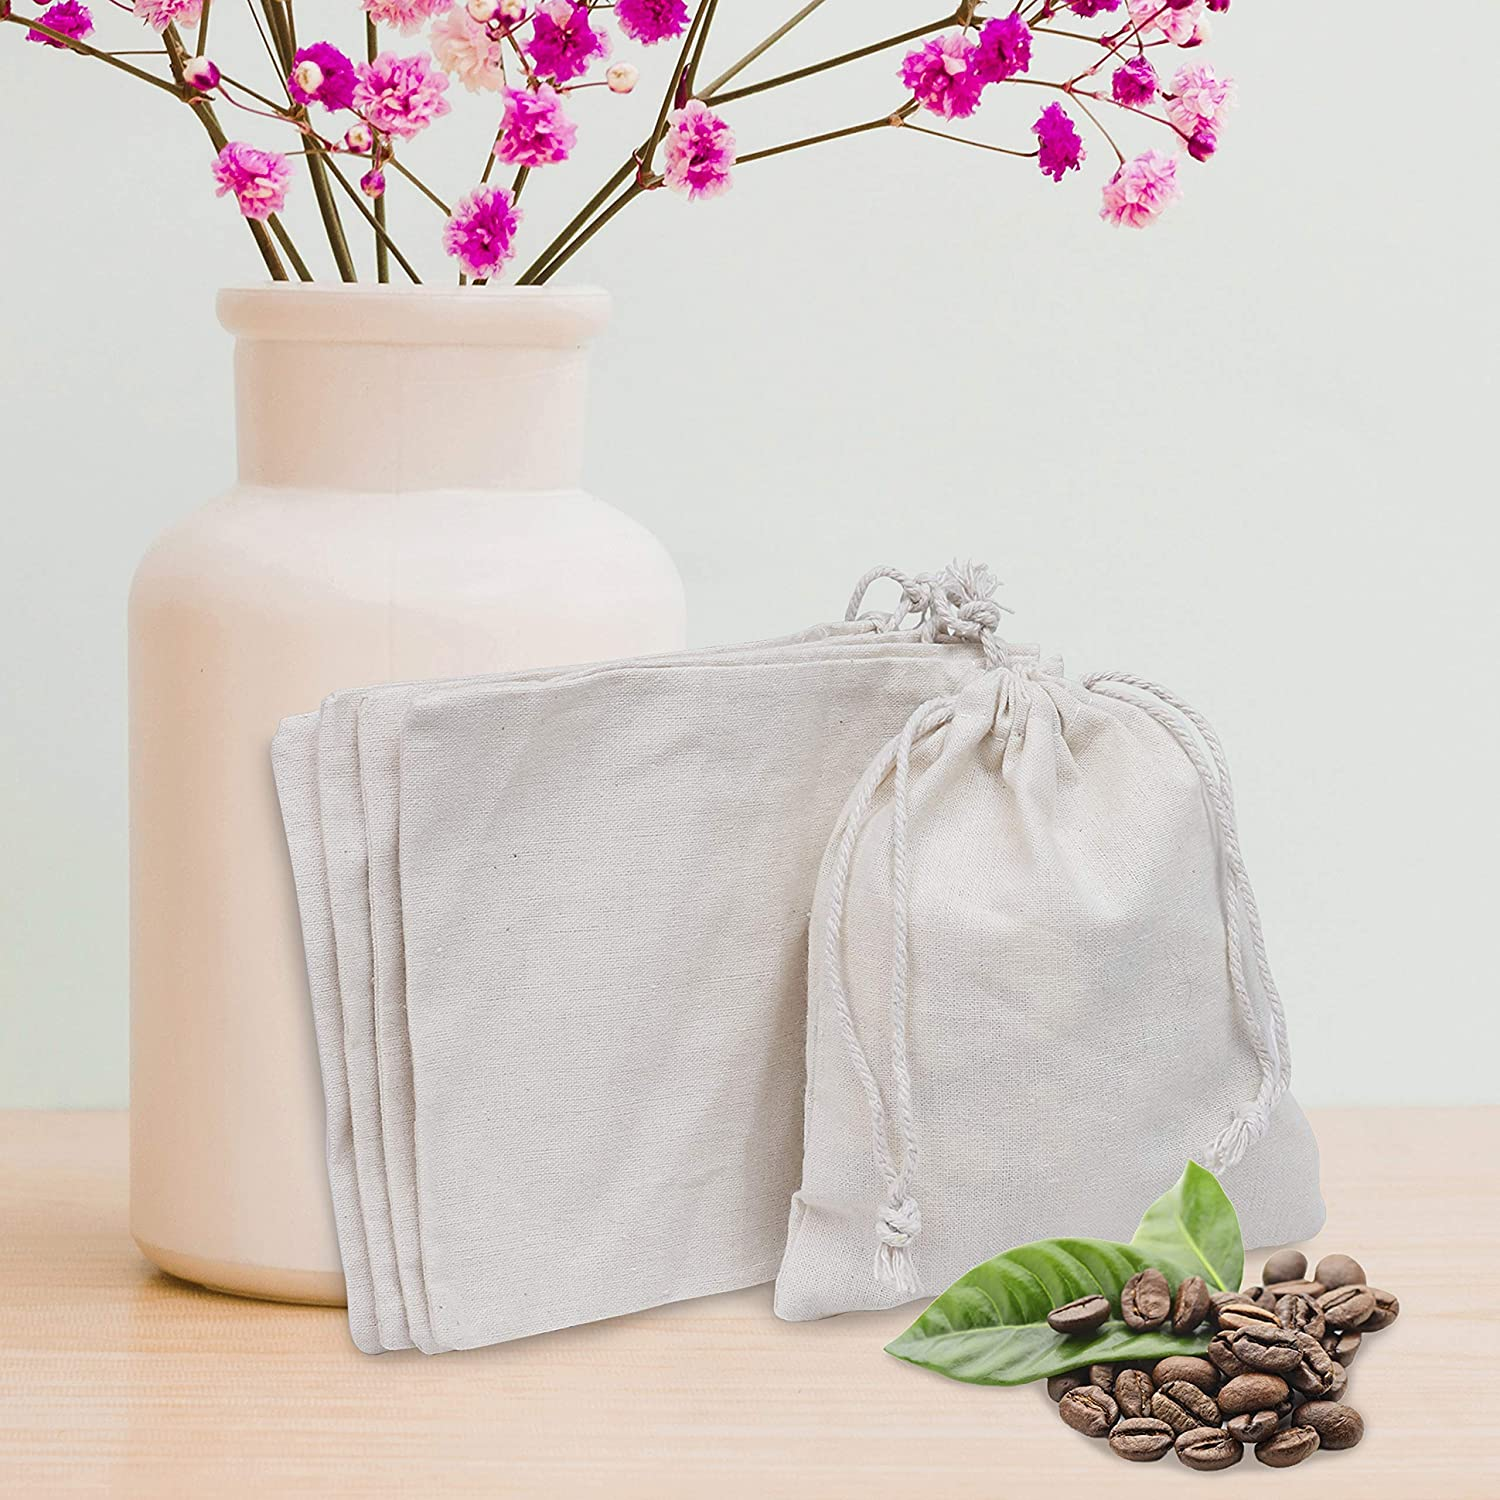 Wedding Favour Bags- L15 X W12.5cm Vegetables Eco Friendly Reusable Produce Bags for Culinary Use Fruits Small,10 Pack Spices All Purpose Washable Natural Cotton Muslin Double Drawstring Bags